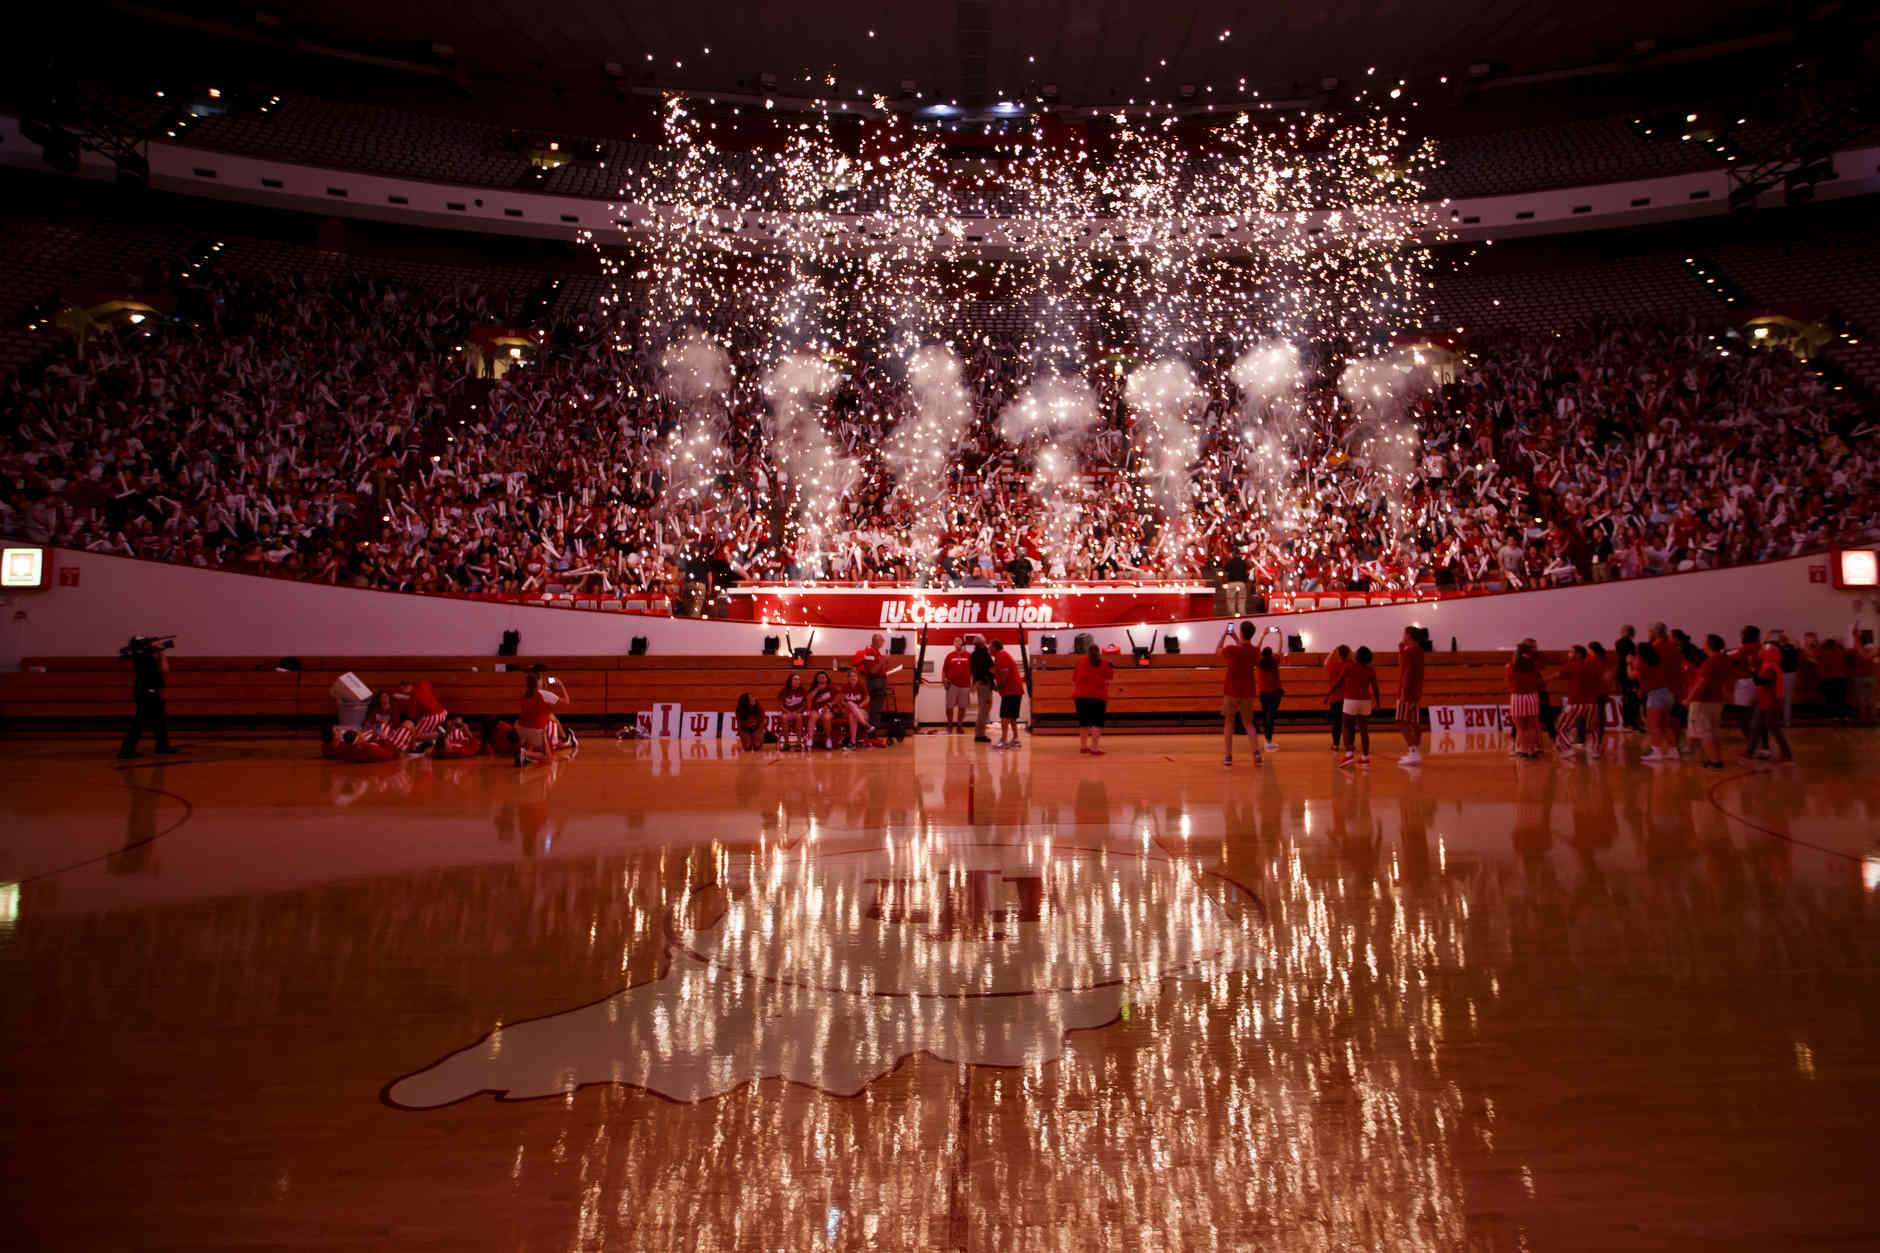 Fireworks explode during the Traditions and Spirit of IU at Assembly Hall on Friday, Aug. 17, 2018. (James Brosher/IU Communications)